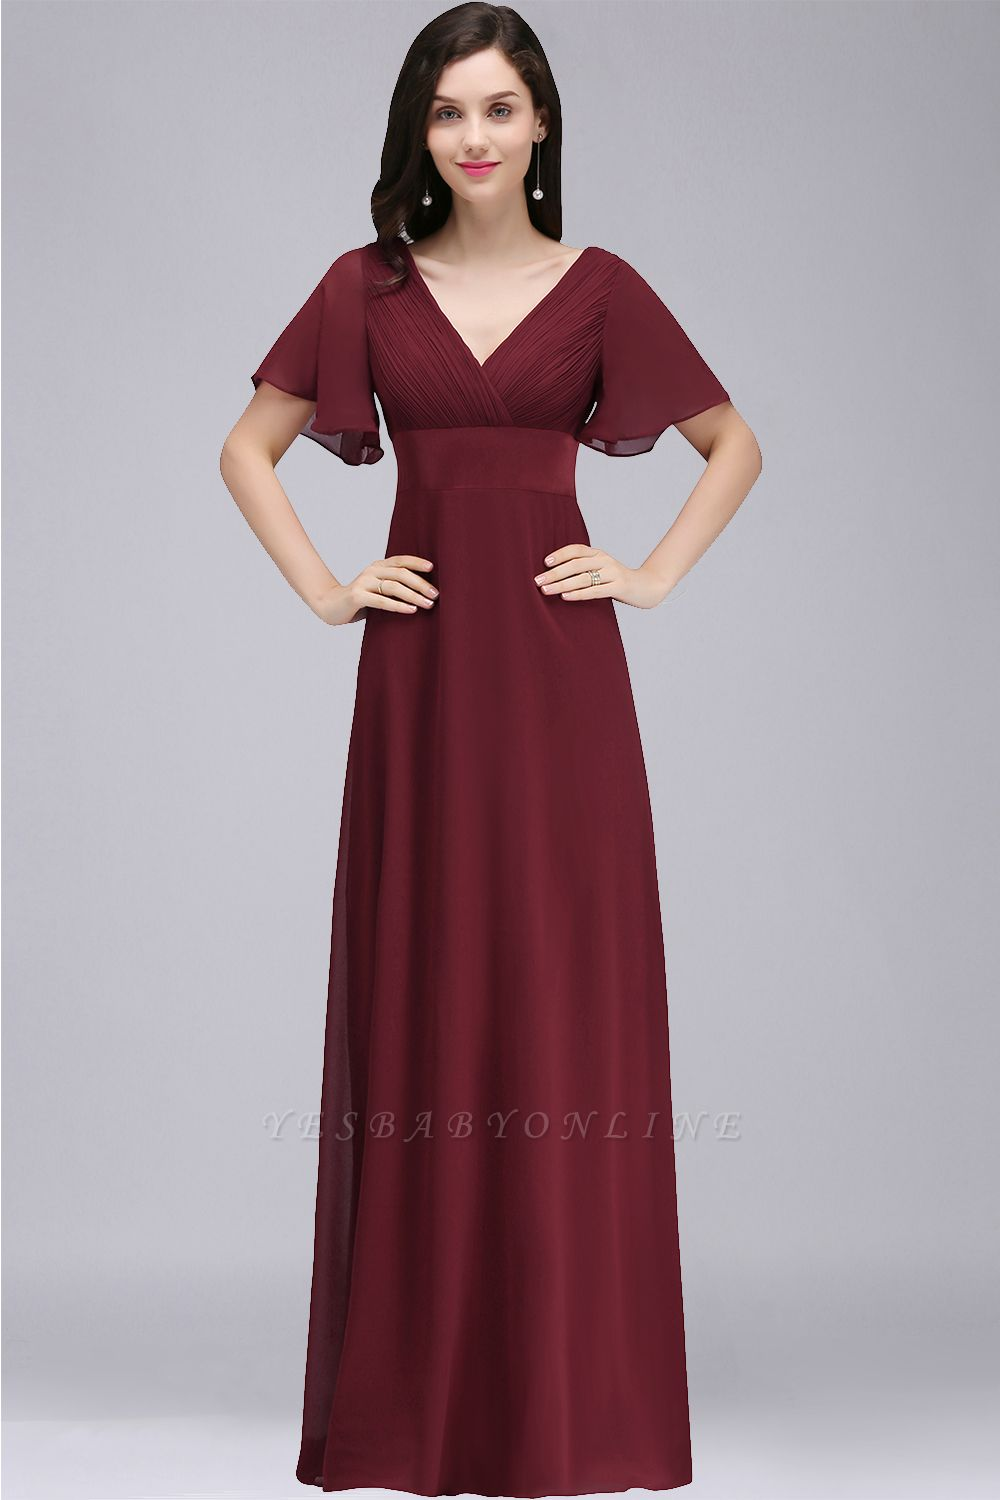 COLETTE | A-line Floor-length Chiffon Burgundy Prom Dress with Soft Pleats